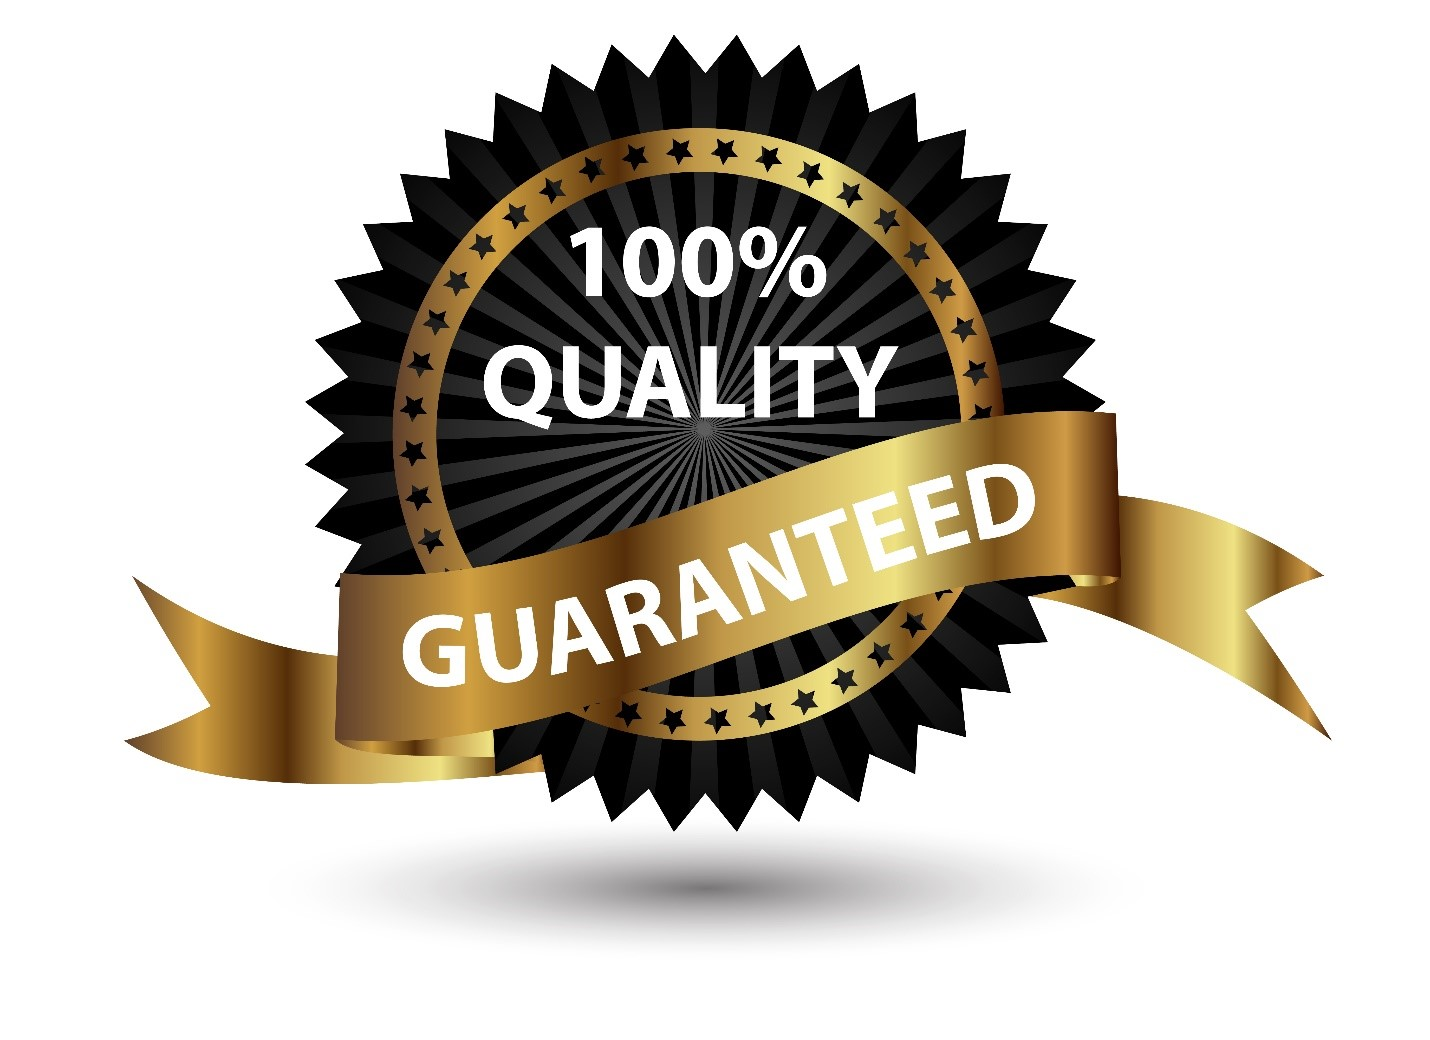 100% Quality Guaranteed on all Peerless Boilers